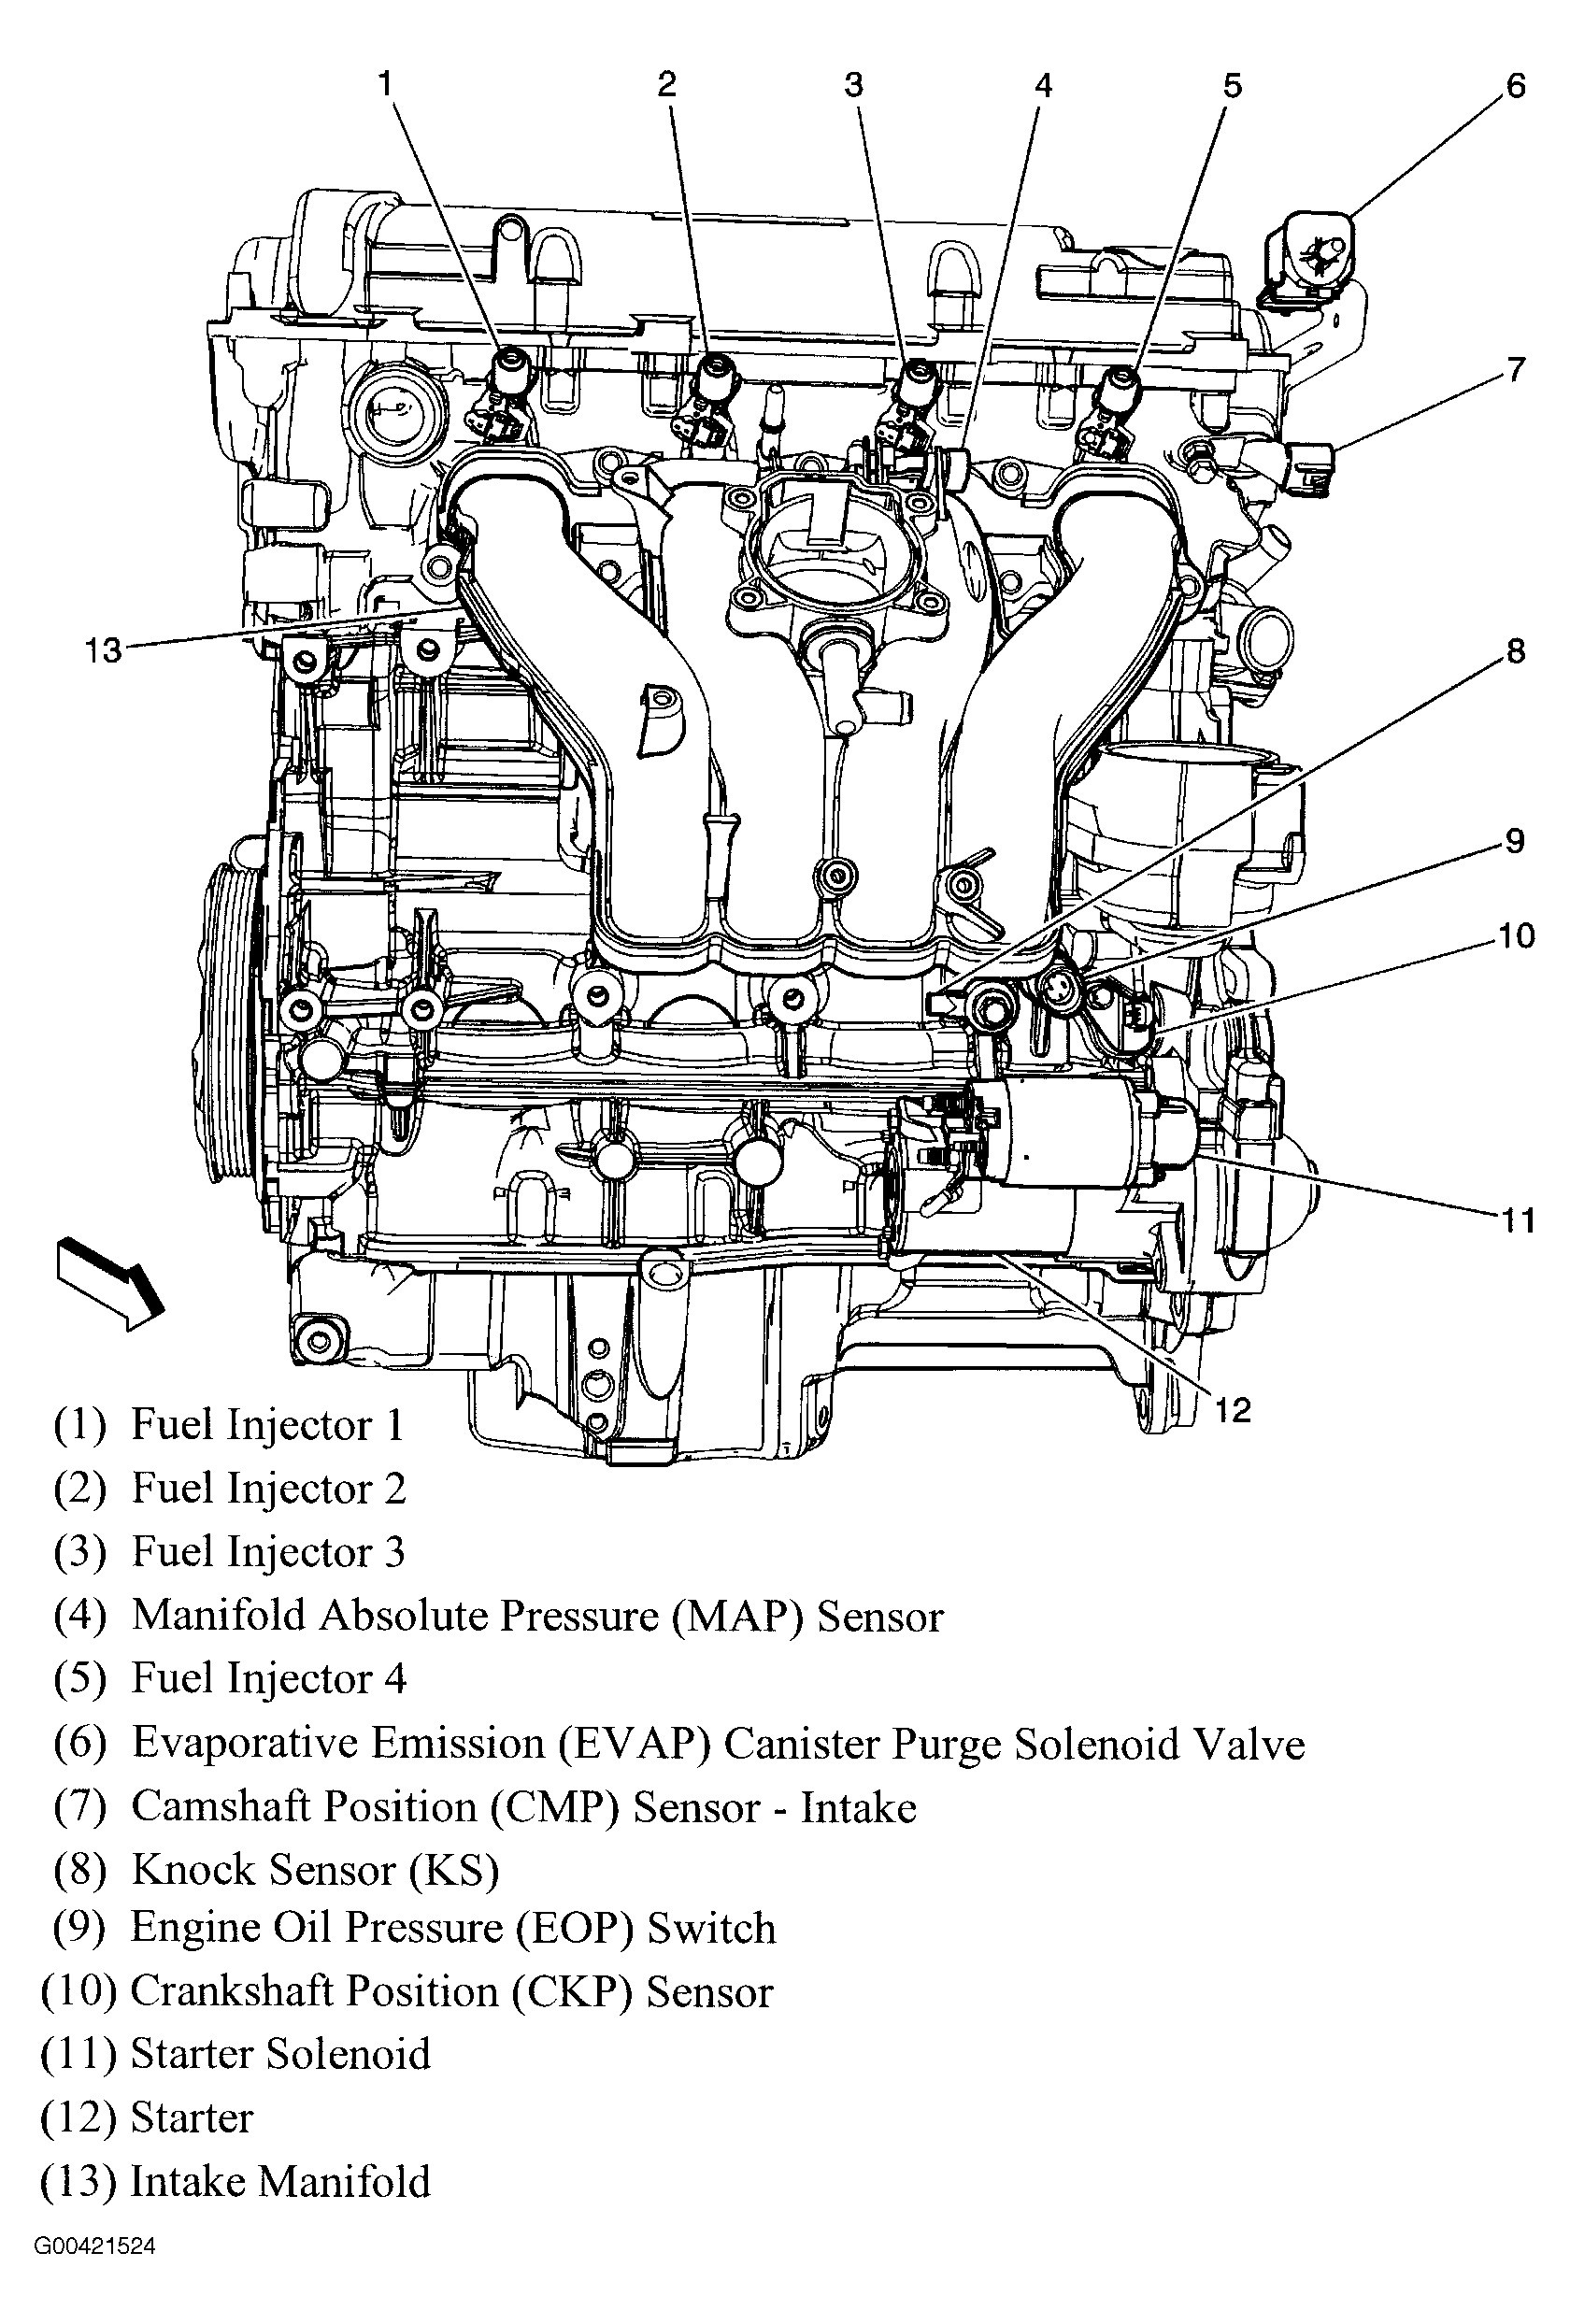 Chevy S10 2 2 Engine Diagram - number one wiring diagram sources on